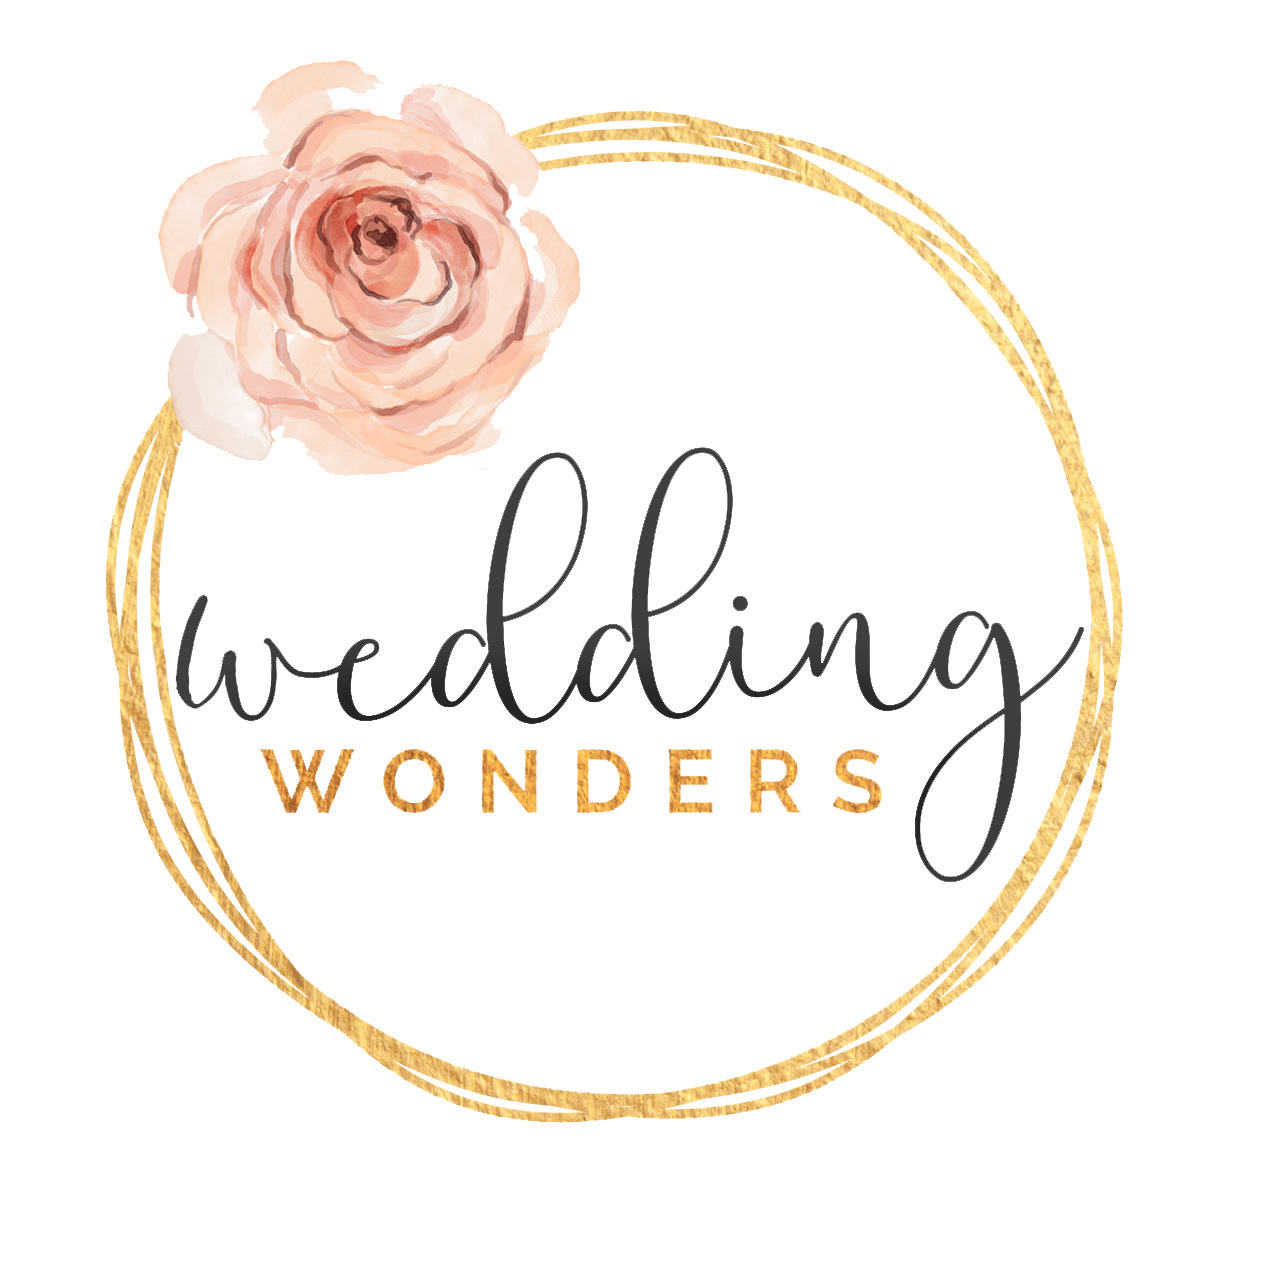 Wedding Wonders